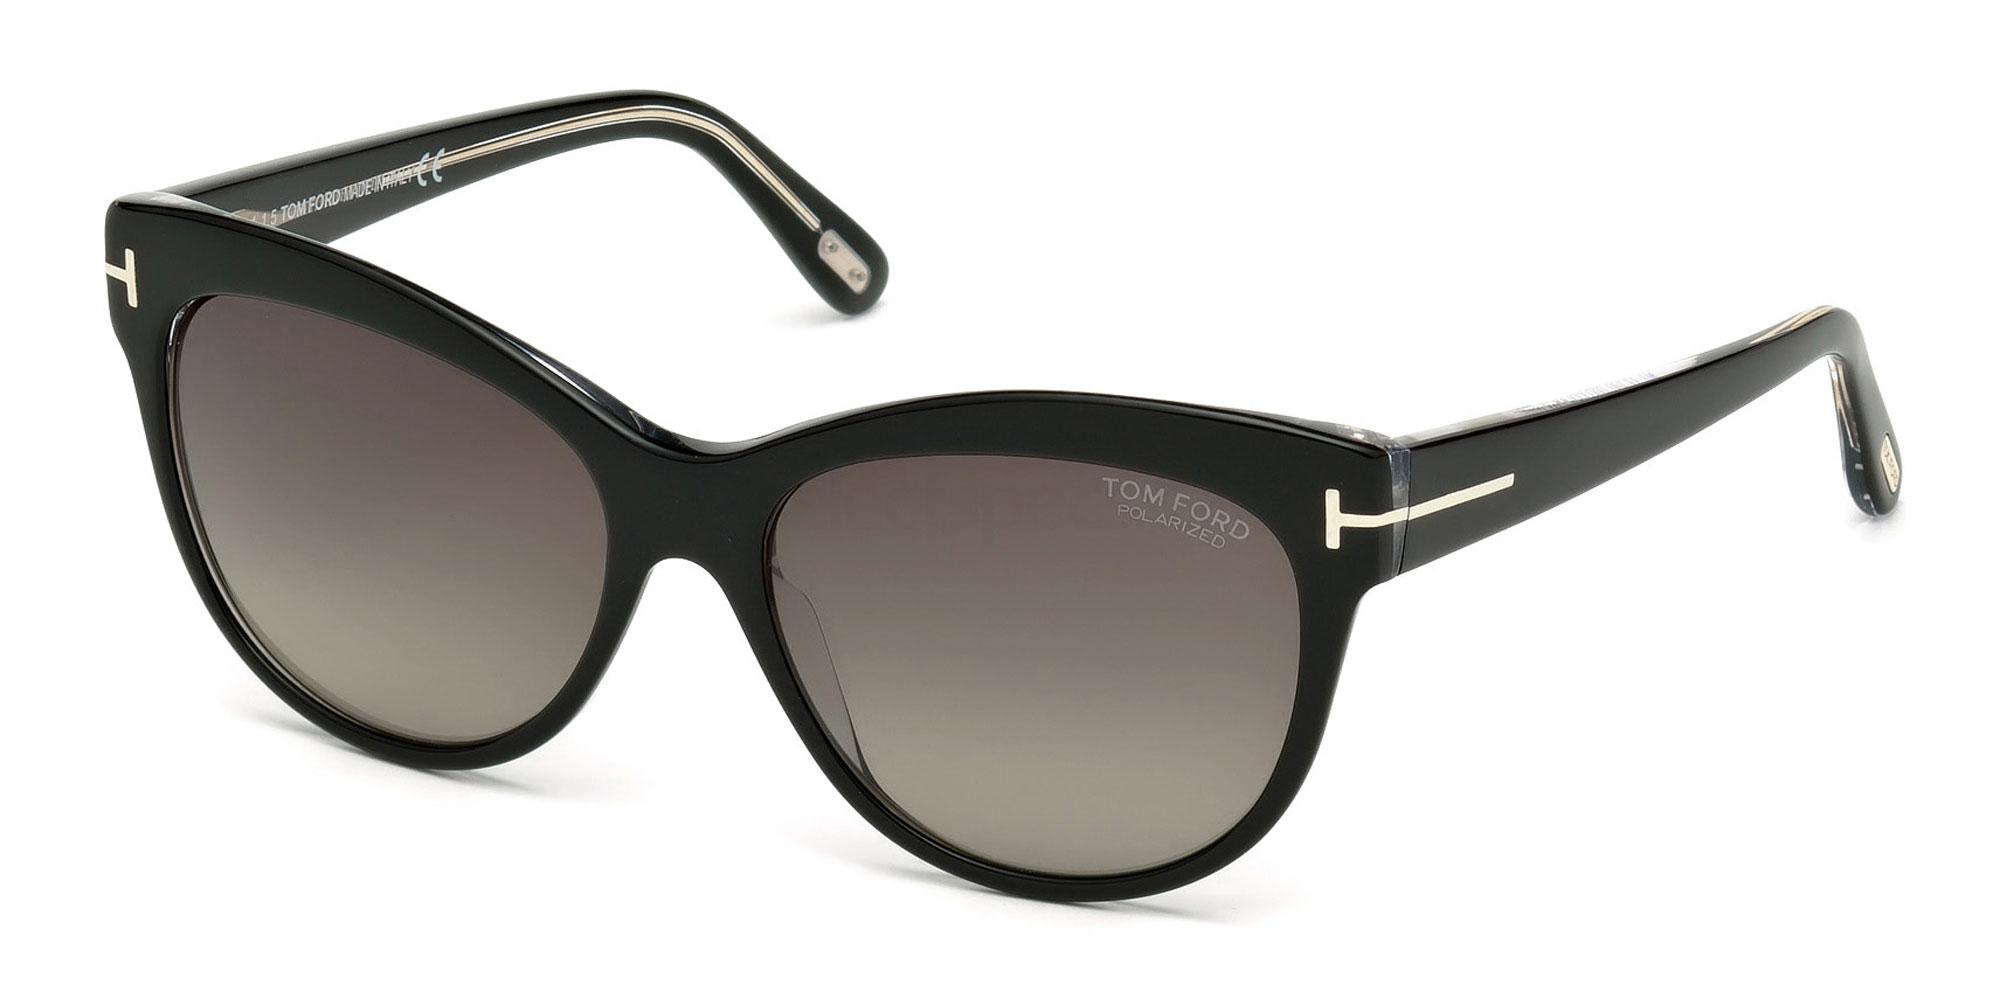 2ee9f6edb45 Find every shop in the world selling tom ford eye at PricePi.com ...